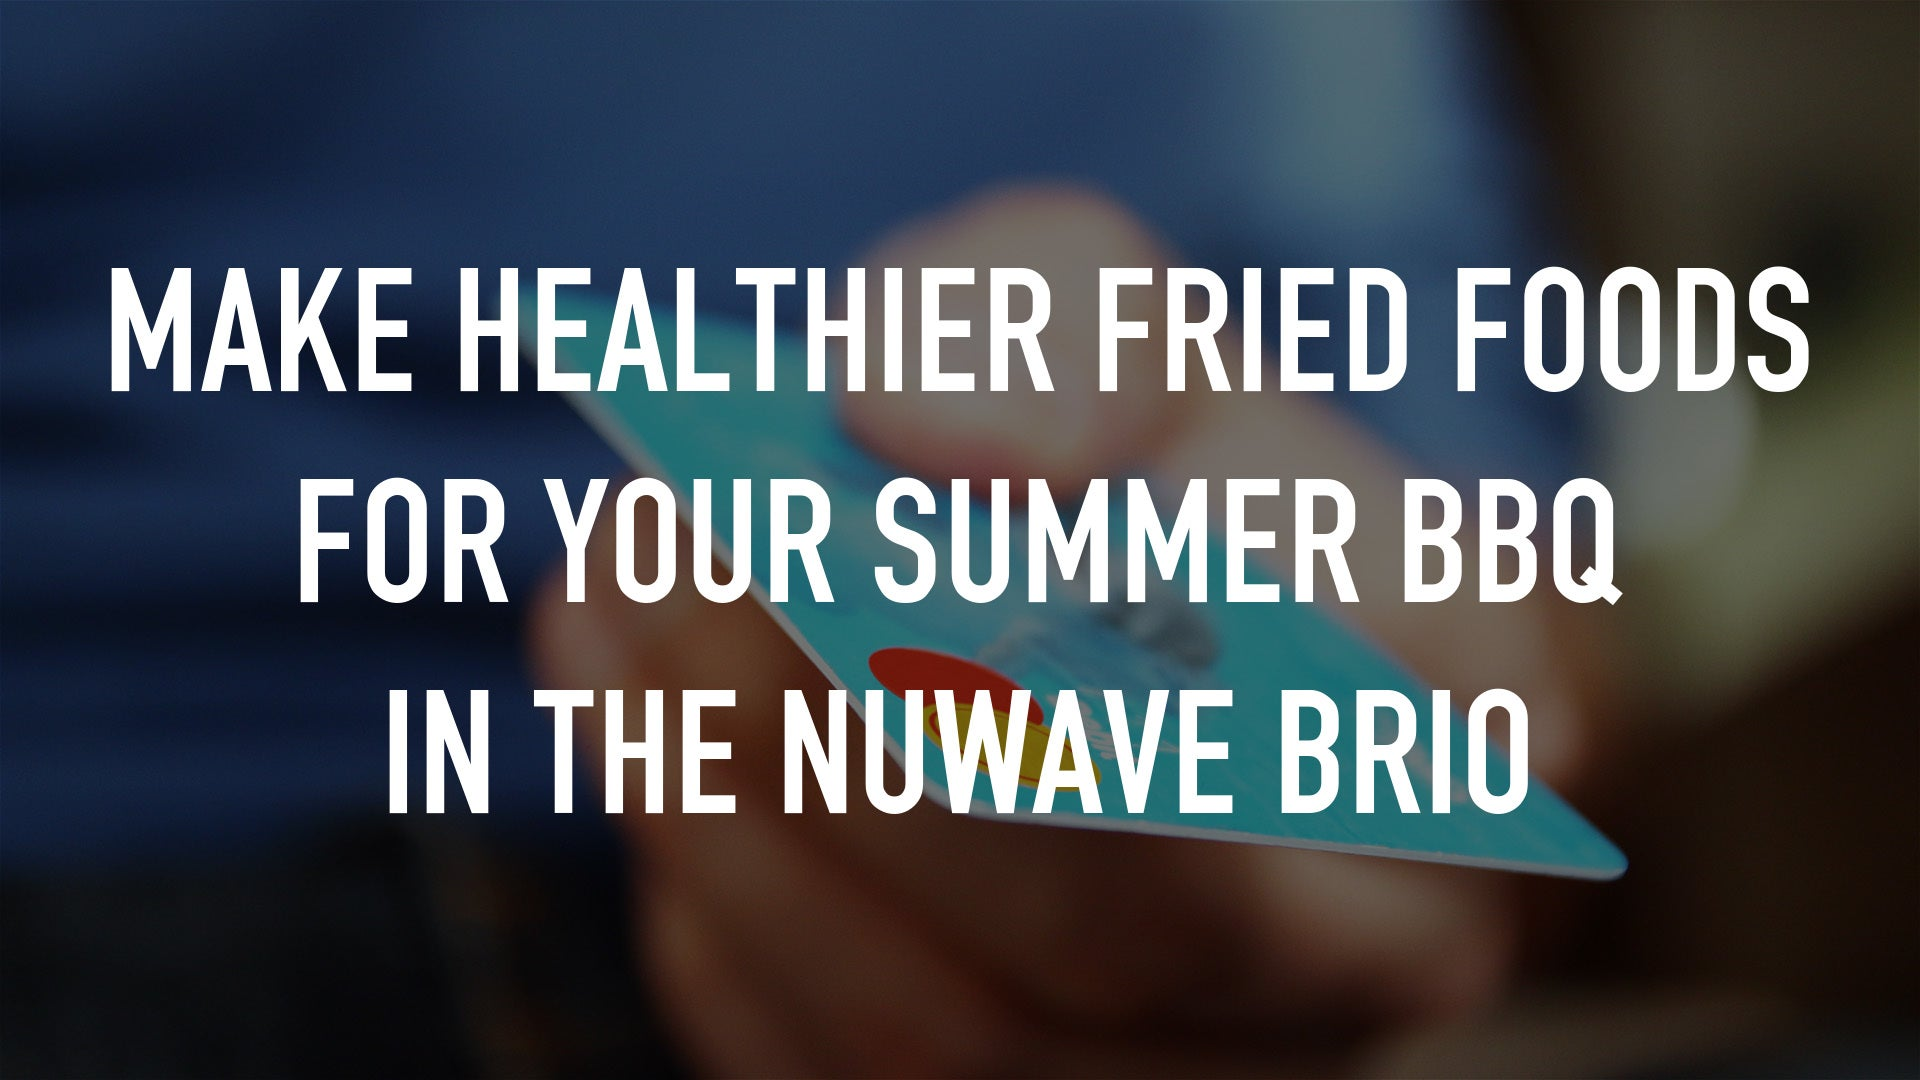 Make Healthier Fried Foods For Your Summer BBQ In The Nuwave Brio